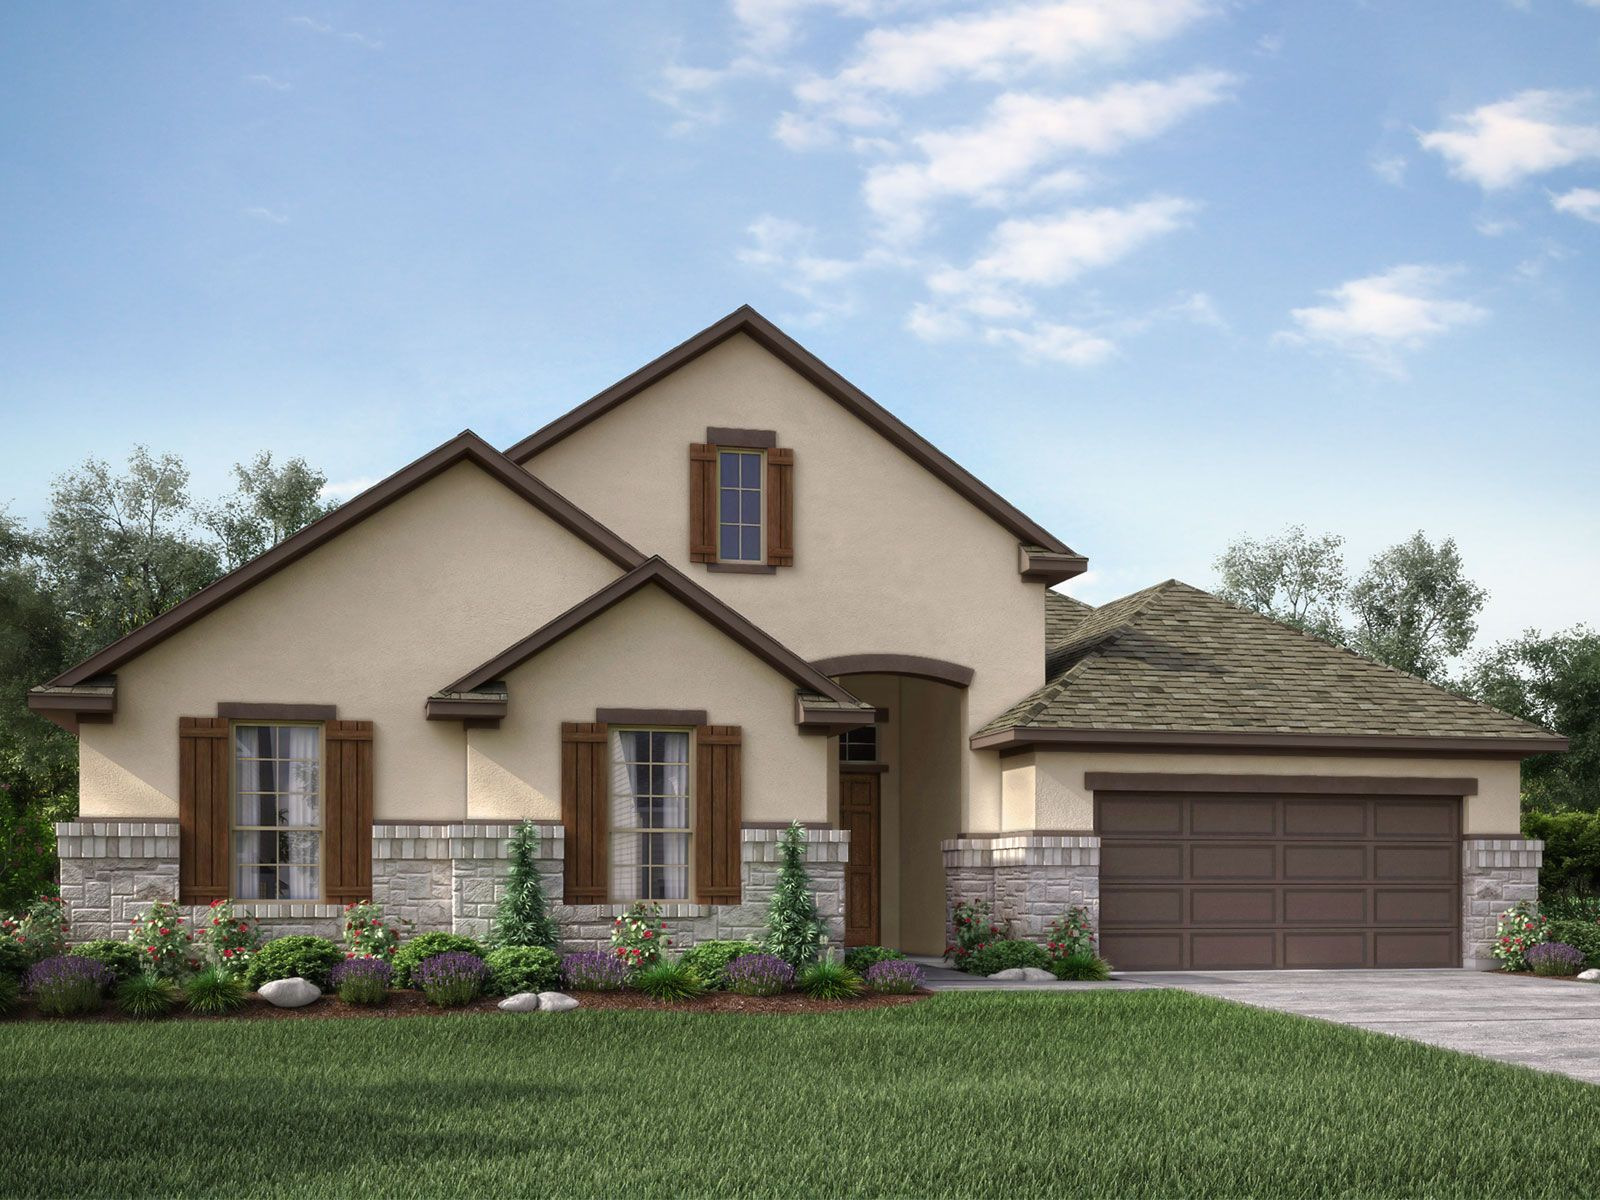 The Domain At Sienna By Meritage Homes In San Antonio Texas